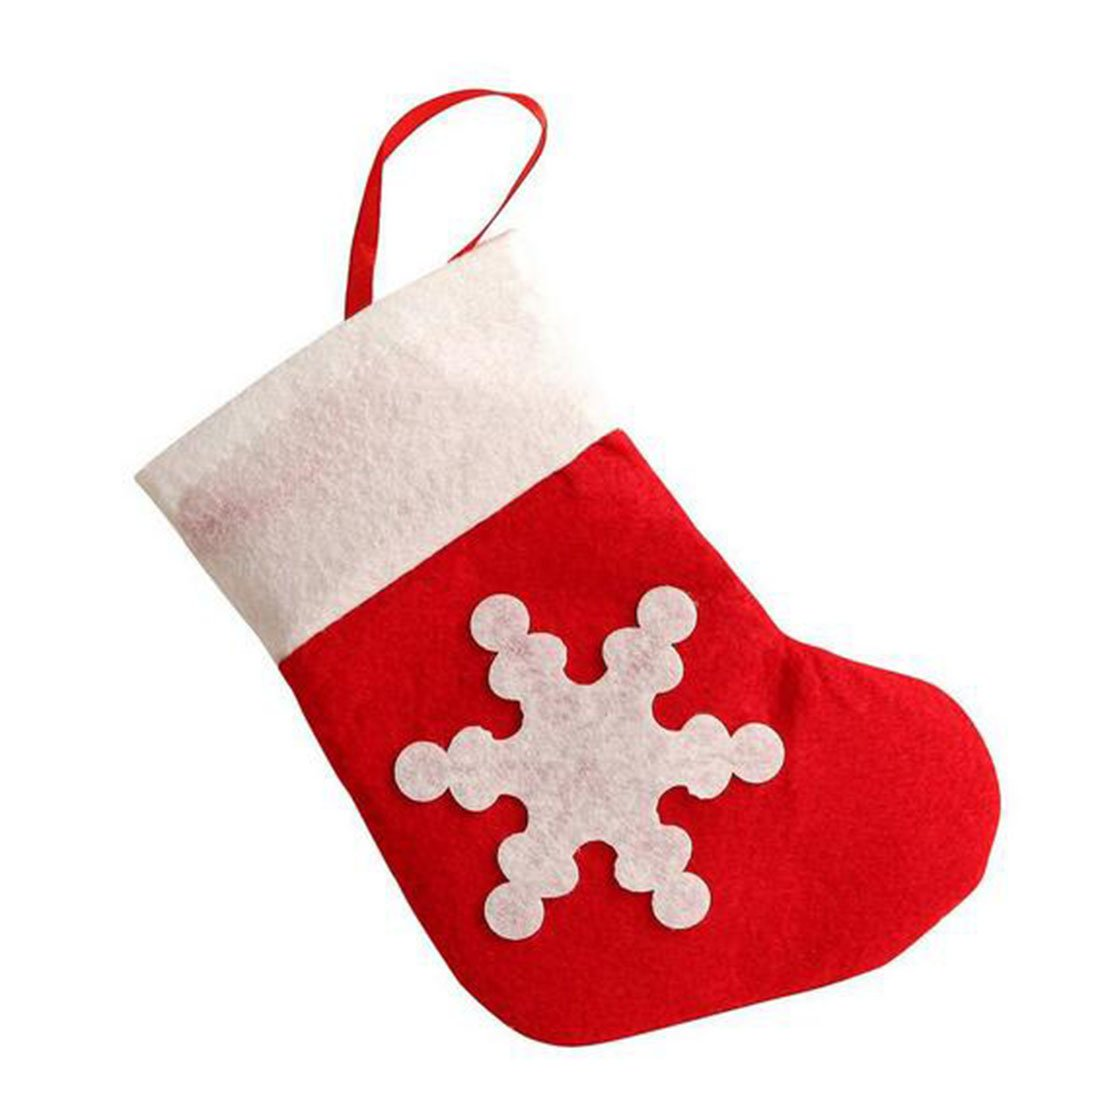 amazoncom 12pcs mini cute christmas stocking dinnerware cover xmas knife and fork bags decorations home kitchen - Christmas Socks Decoration